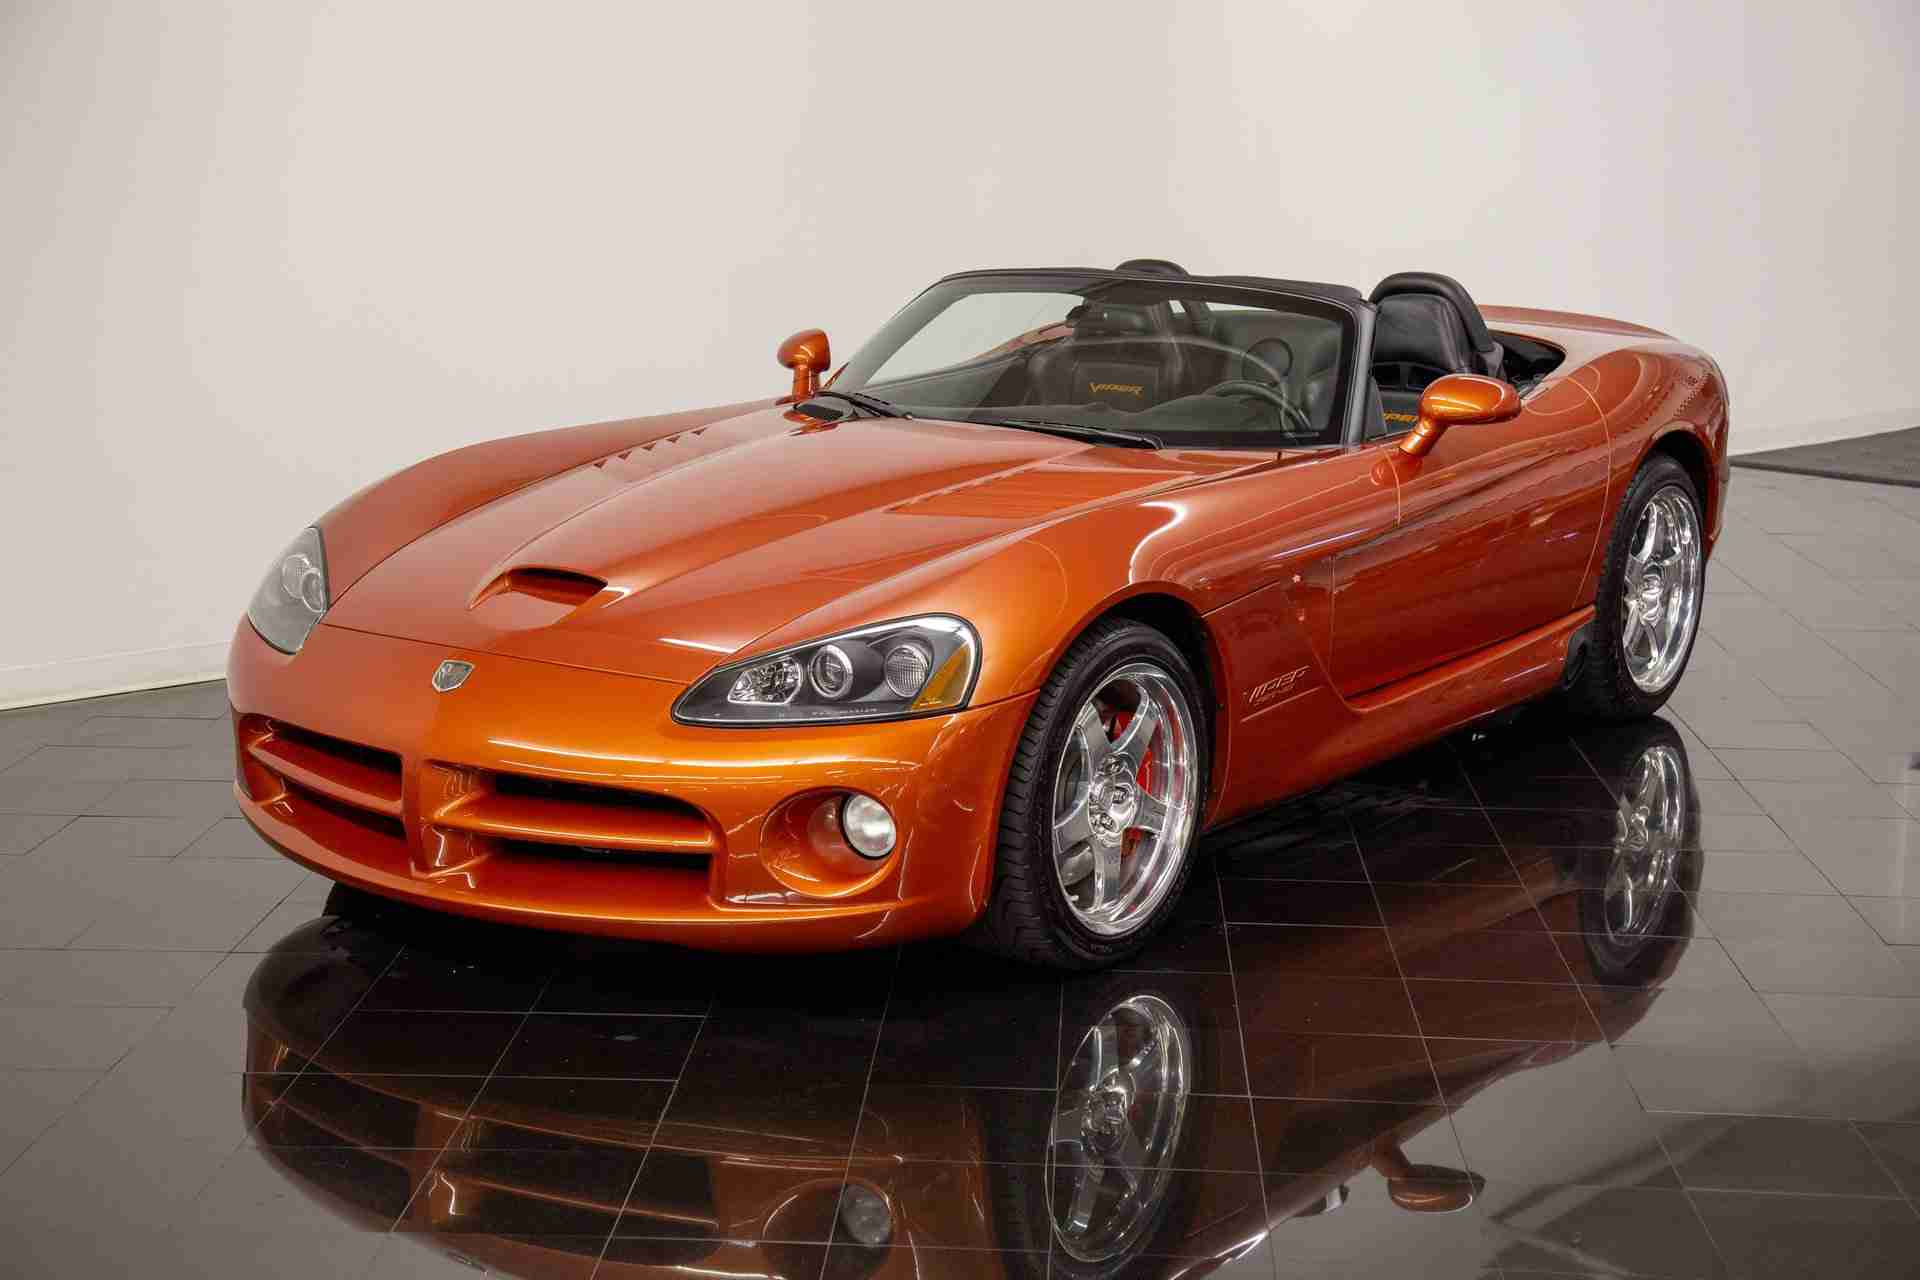 2005 Dodge Viper SRT-10 Copperhead Edition Roadster